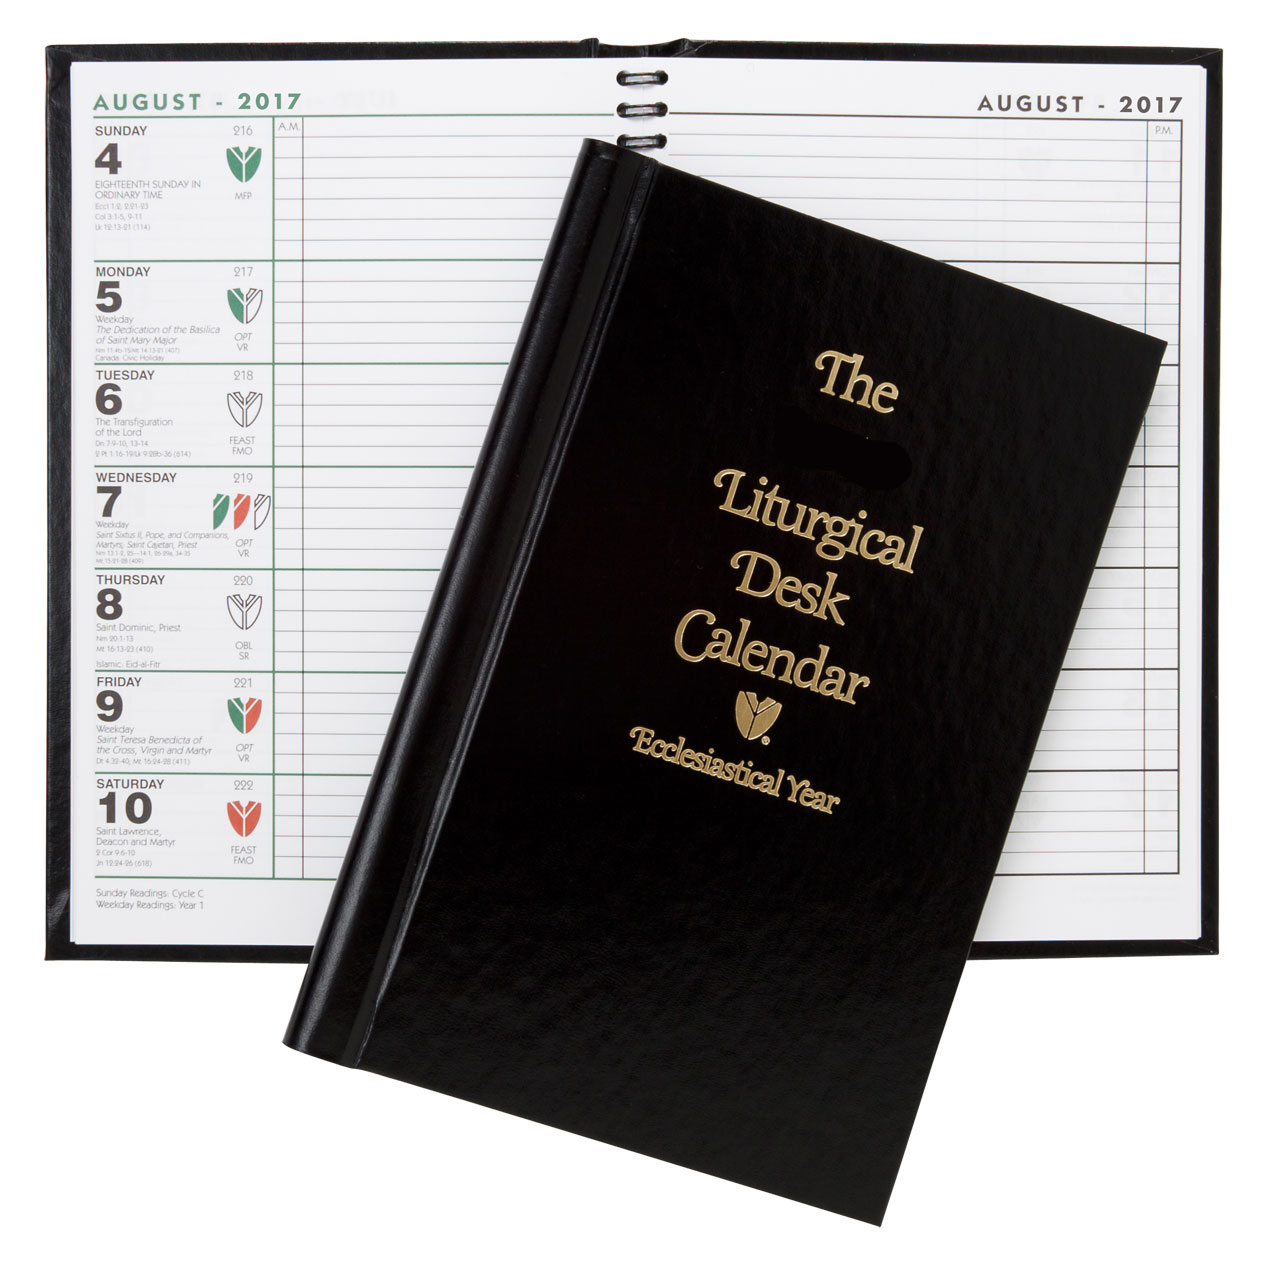 liturgical desk calendar hardcover 2018